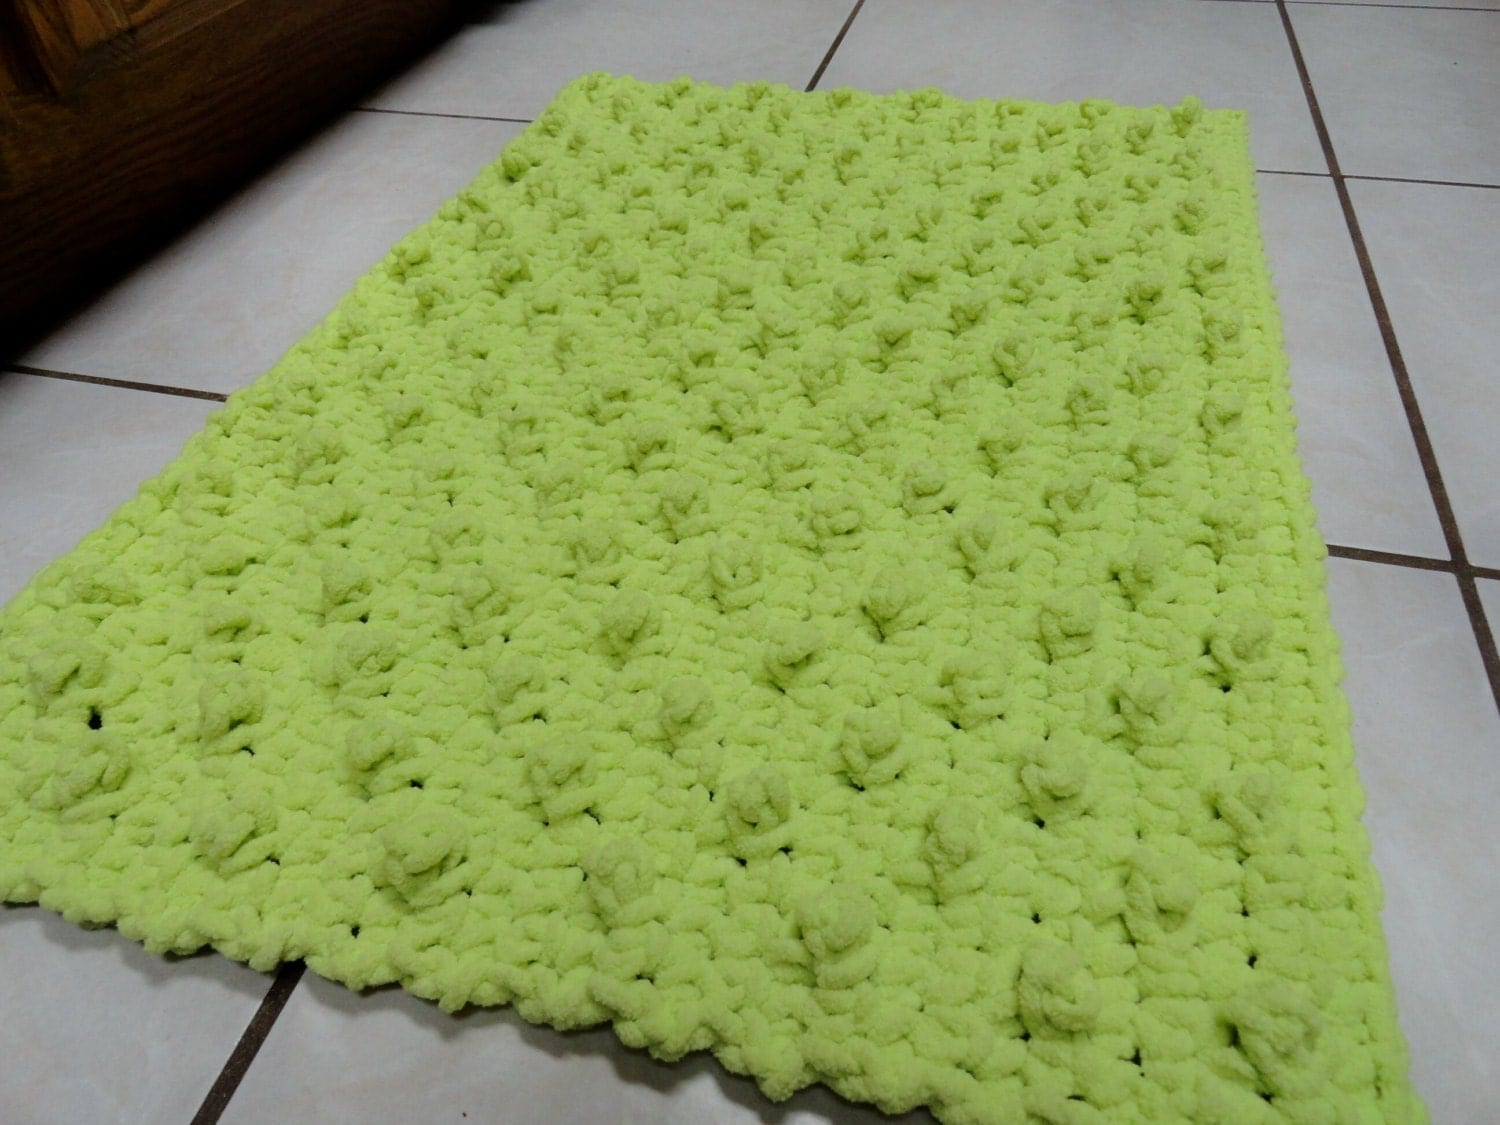 Original I Went With The Medium14 Hexagon Option, To Fit My Bathroom  And Compliment The Big Bold Chevron Curtain Already Hanging In There The Bees Knees Crochet Rug Works Up Crazy Fast With A Big Fat Hook And Bulky Yarn, And While The